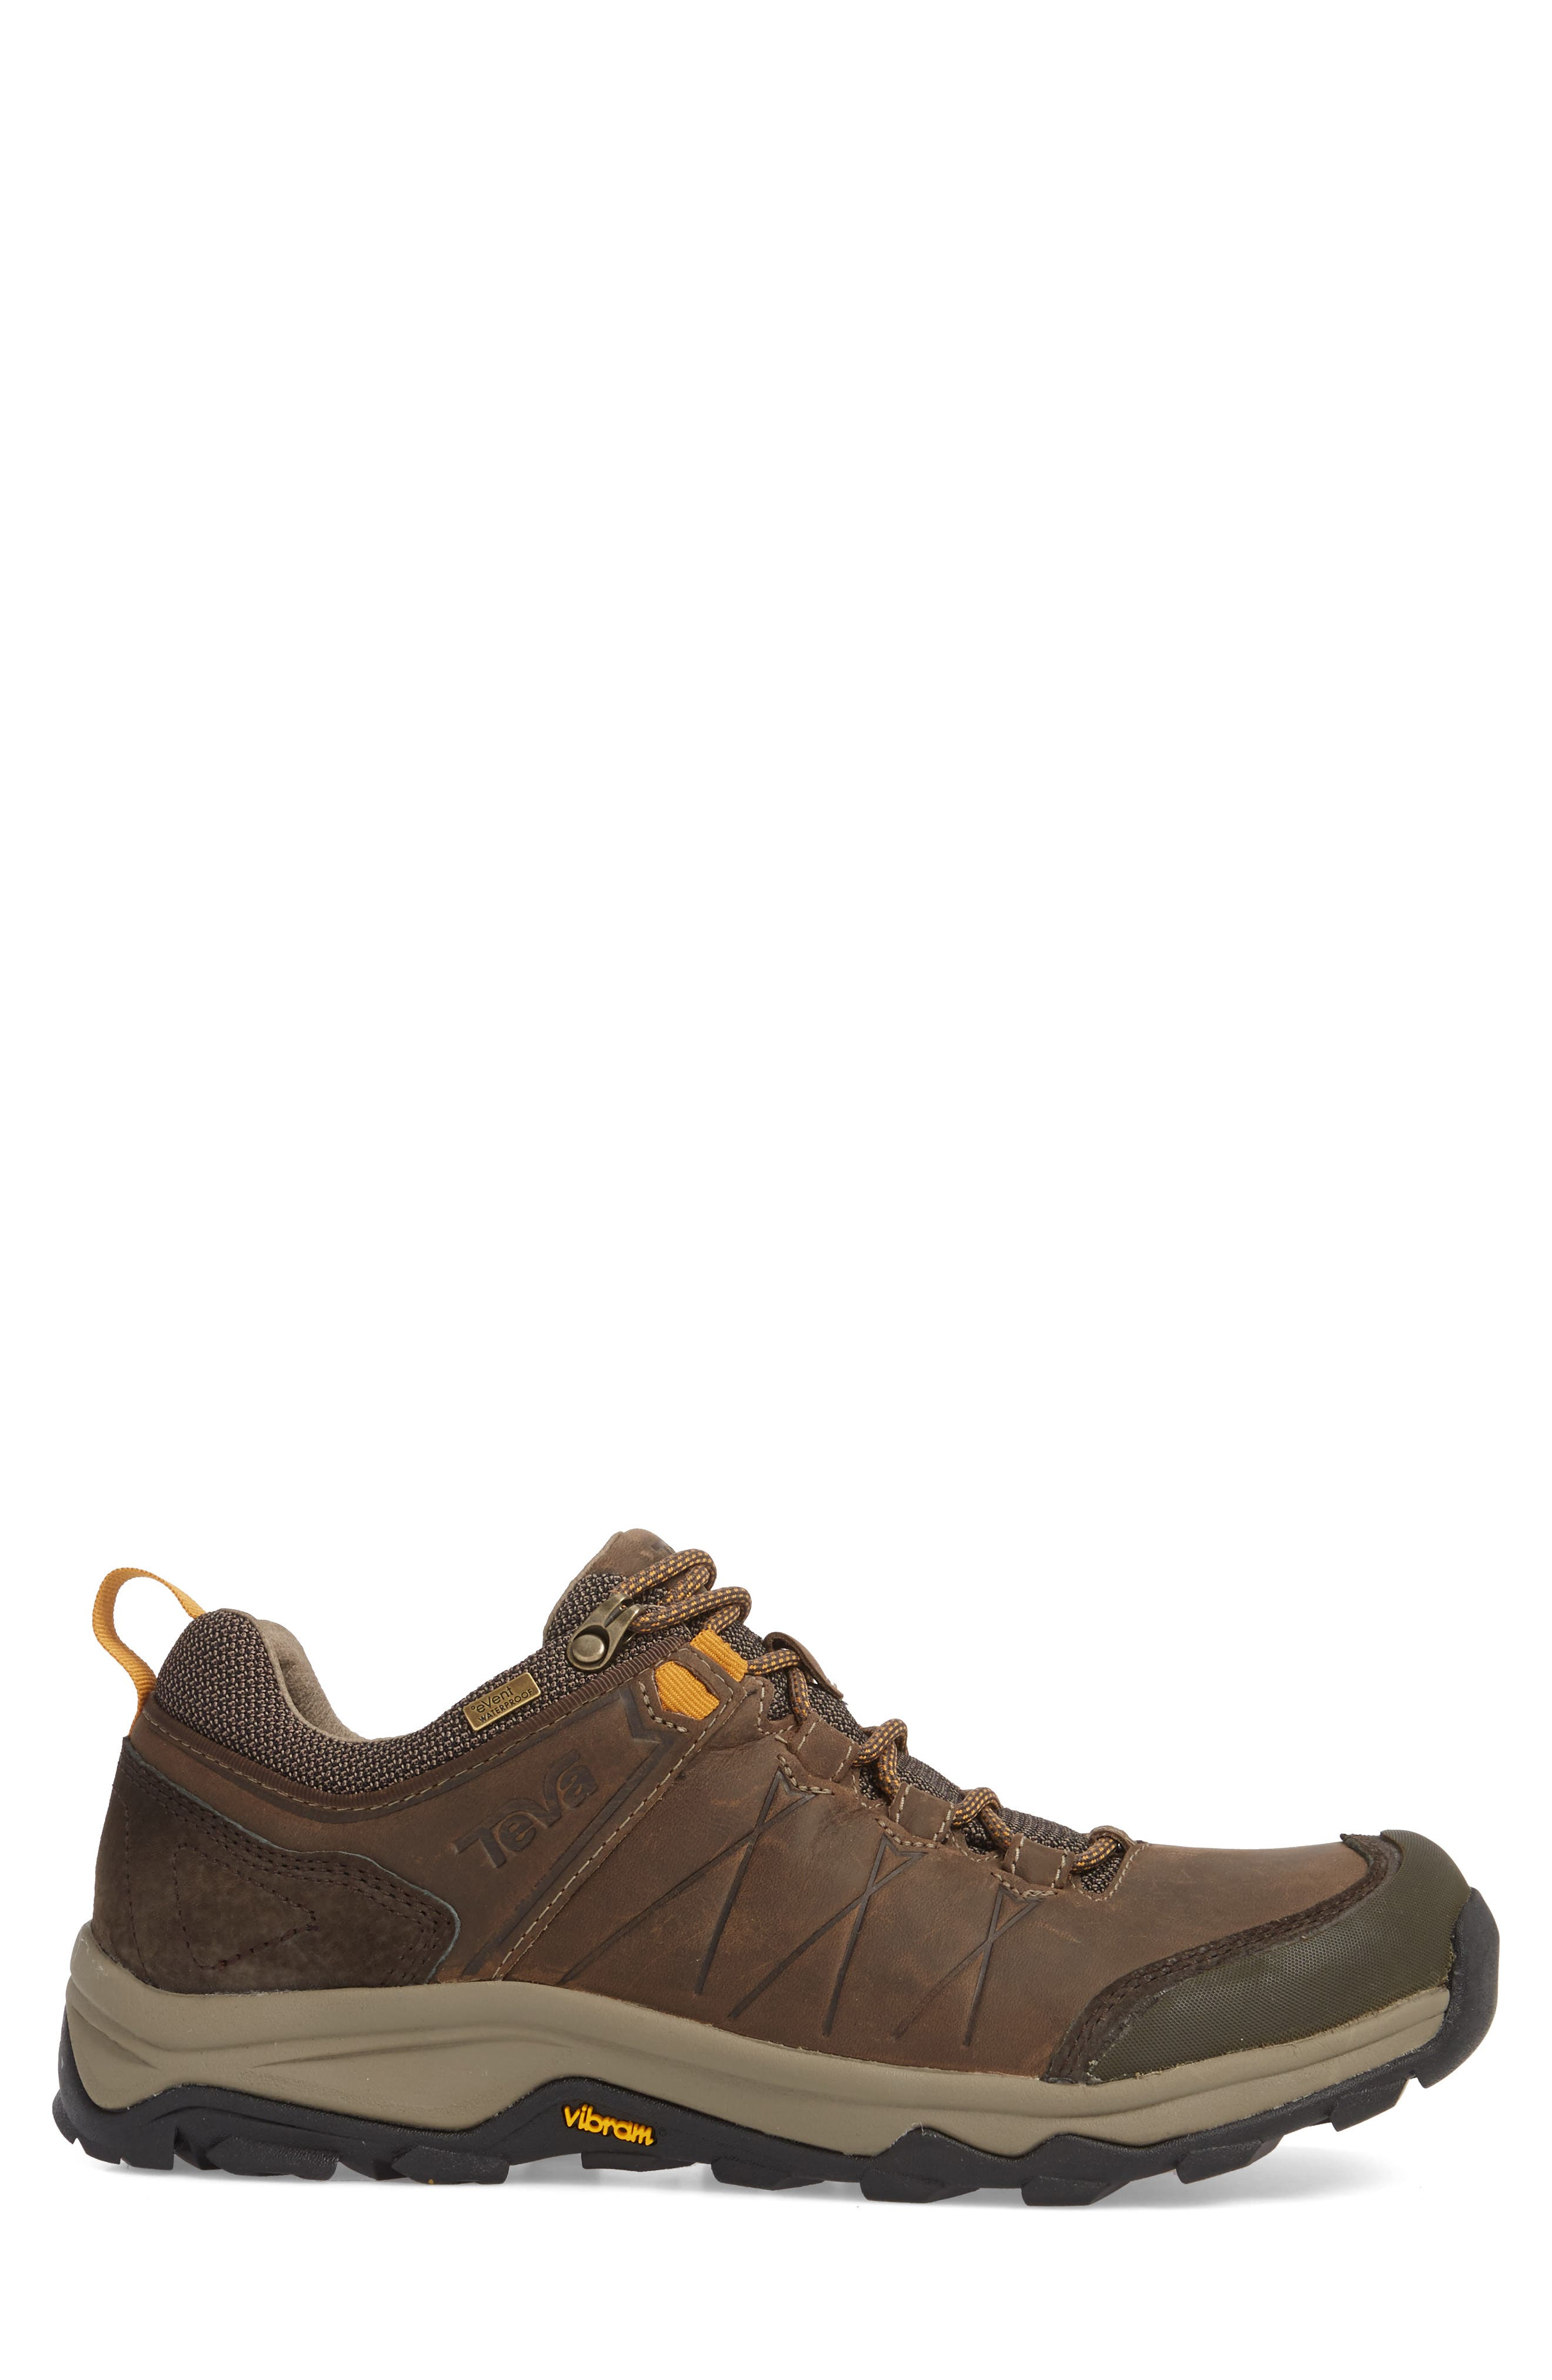 Alternate Image 3  - Teva Arrowood Riva Waterproof Sneaker (Men)